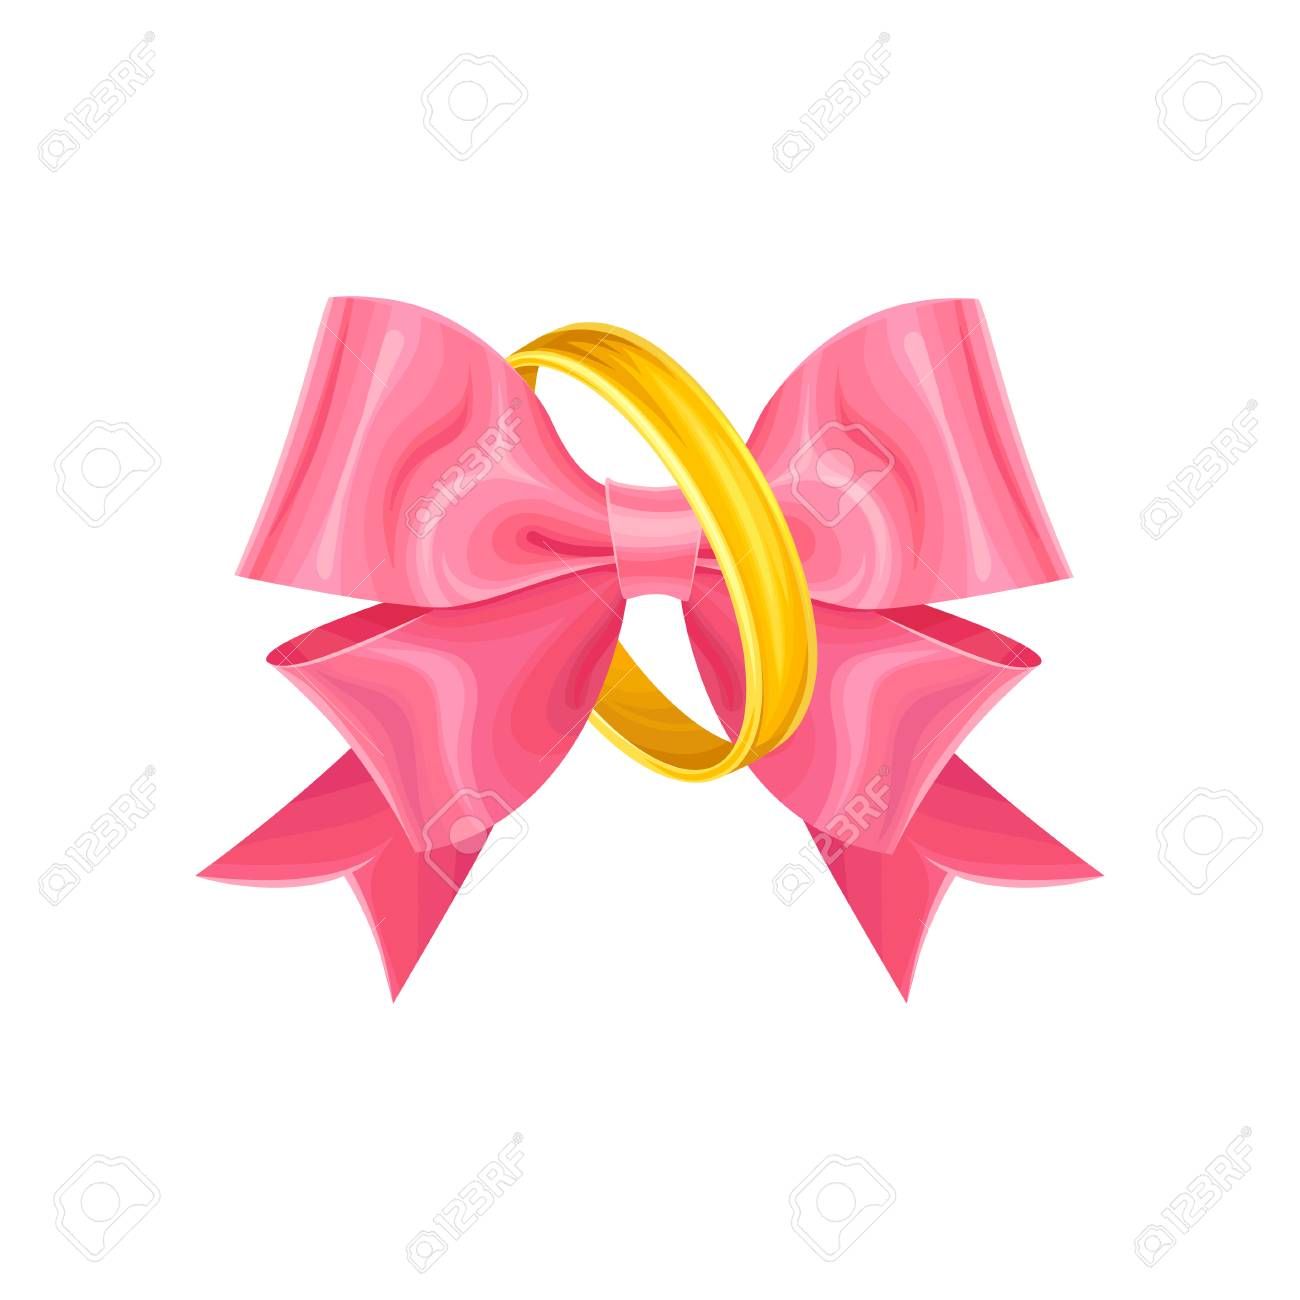 Beautiful Detailed Wedding Golden Rings With Pink Bow Inside ...